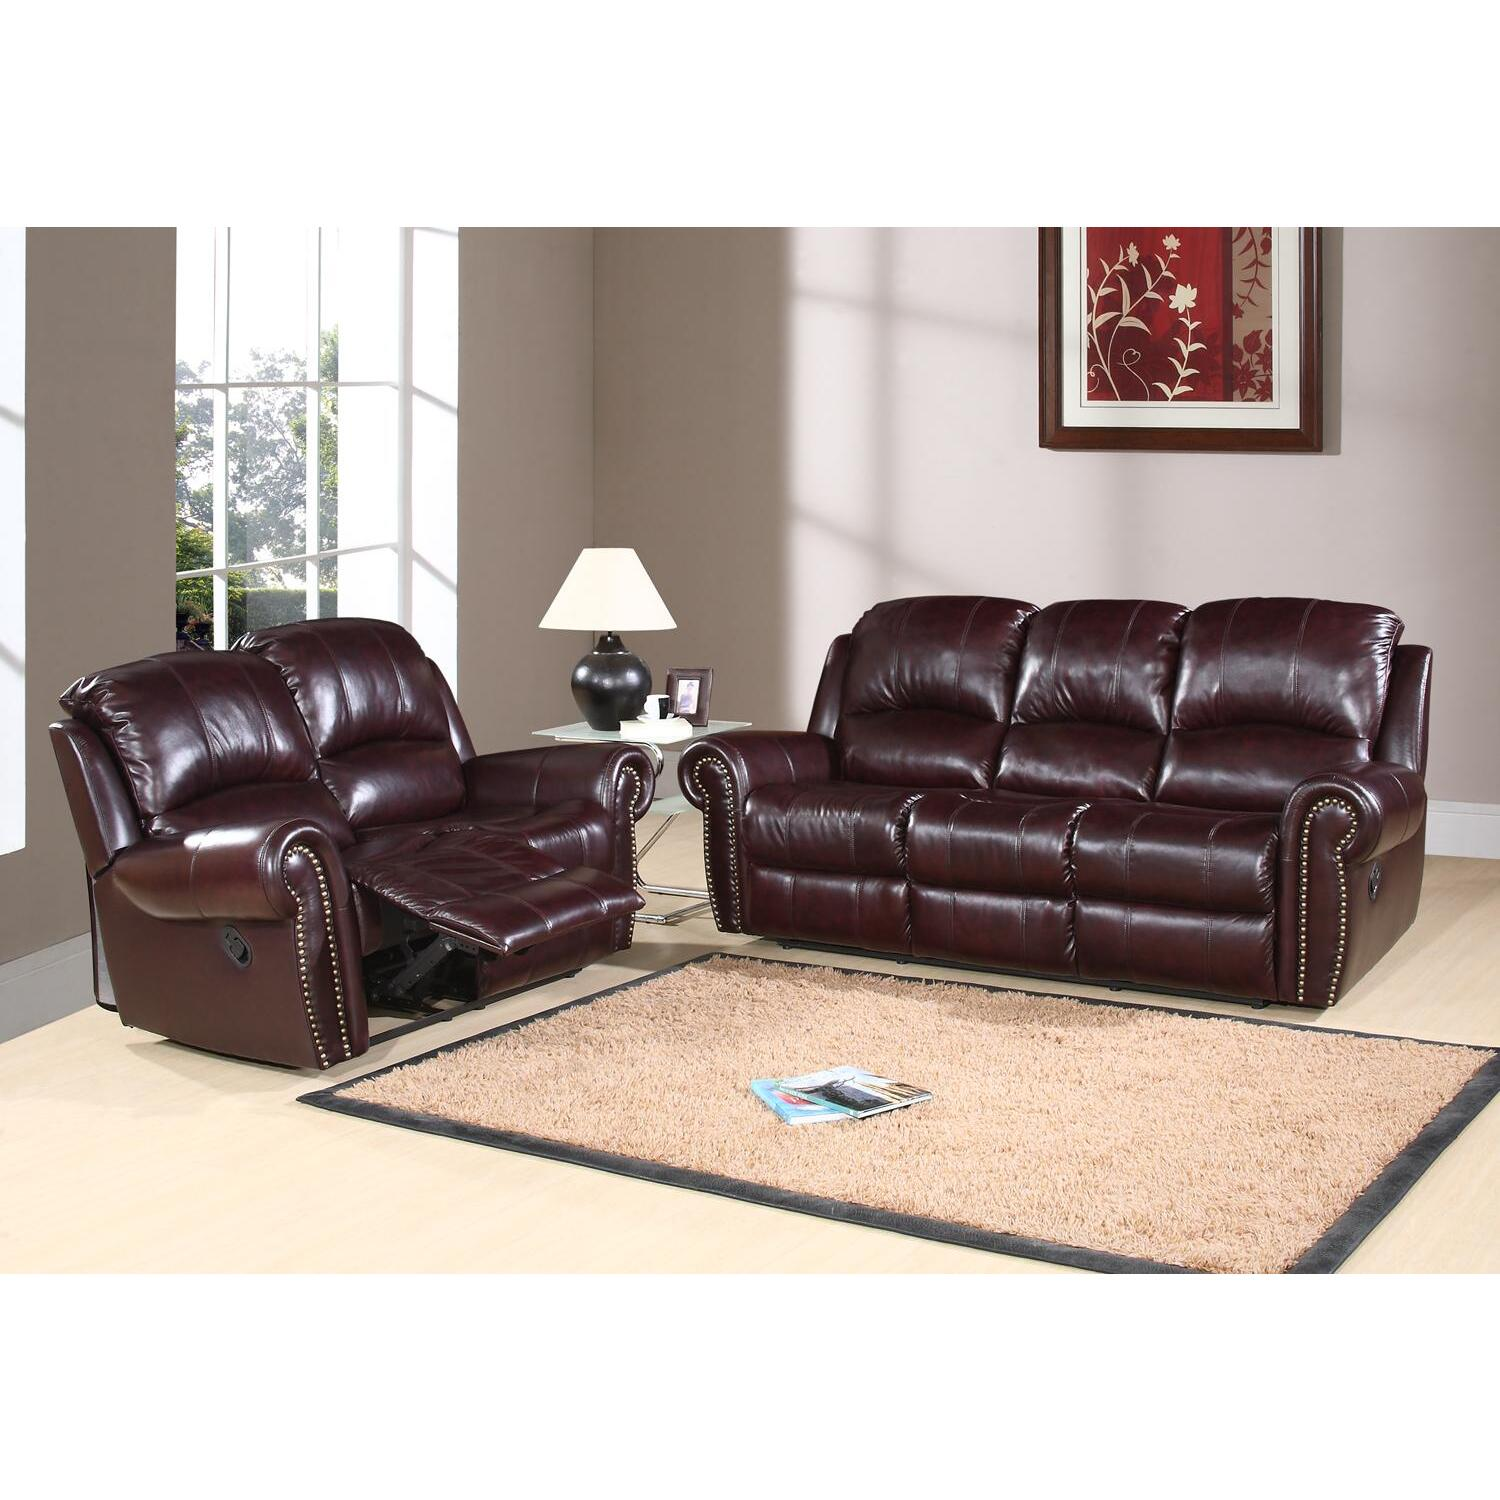 Reclining Italian Leather Sofa and Loveseat  OJCommerce